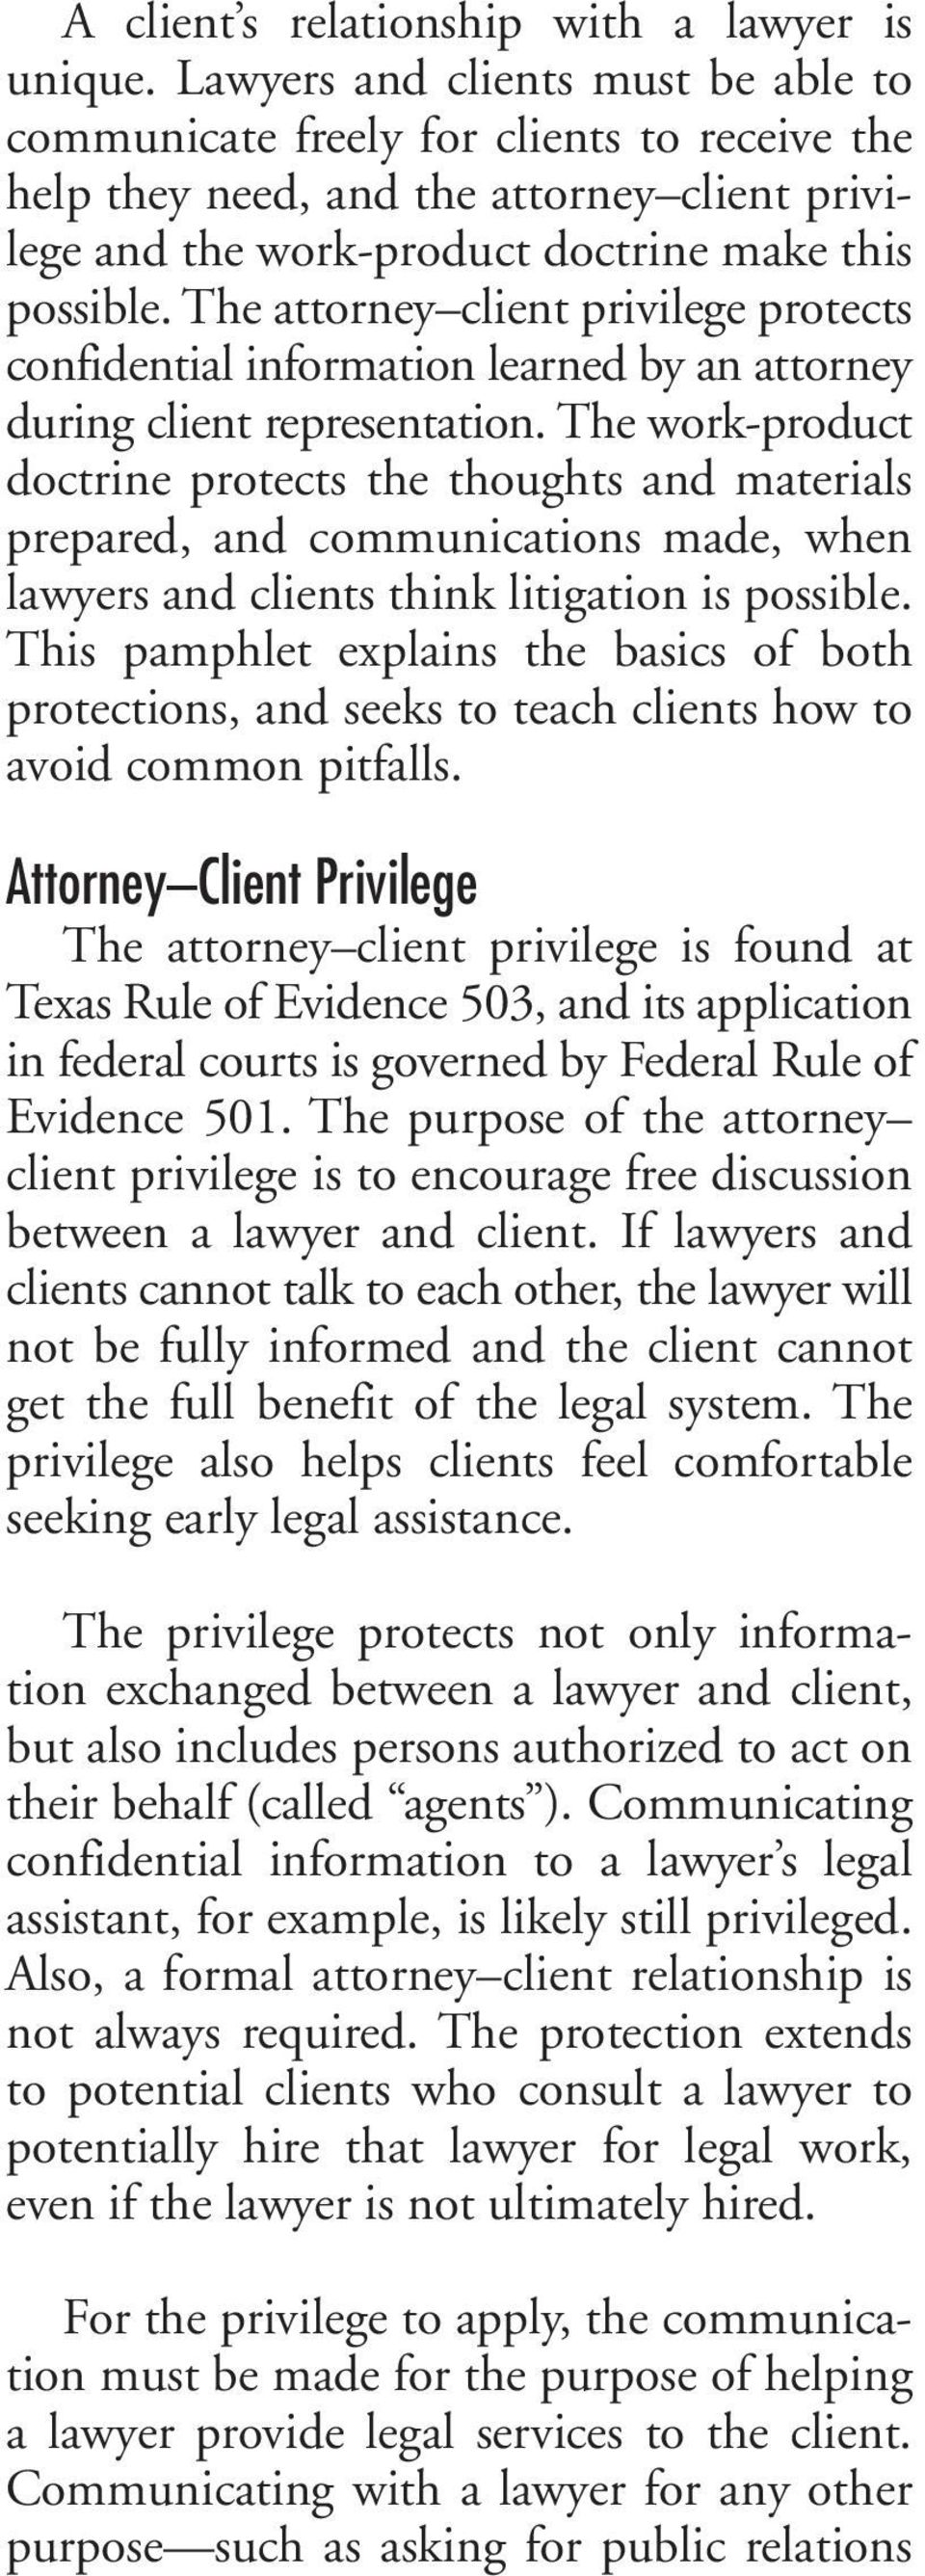 The attorney client privilege protects confidential information learned by an attorney during client representation.